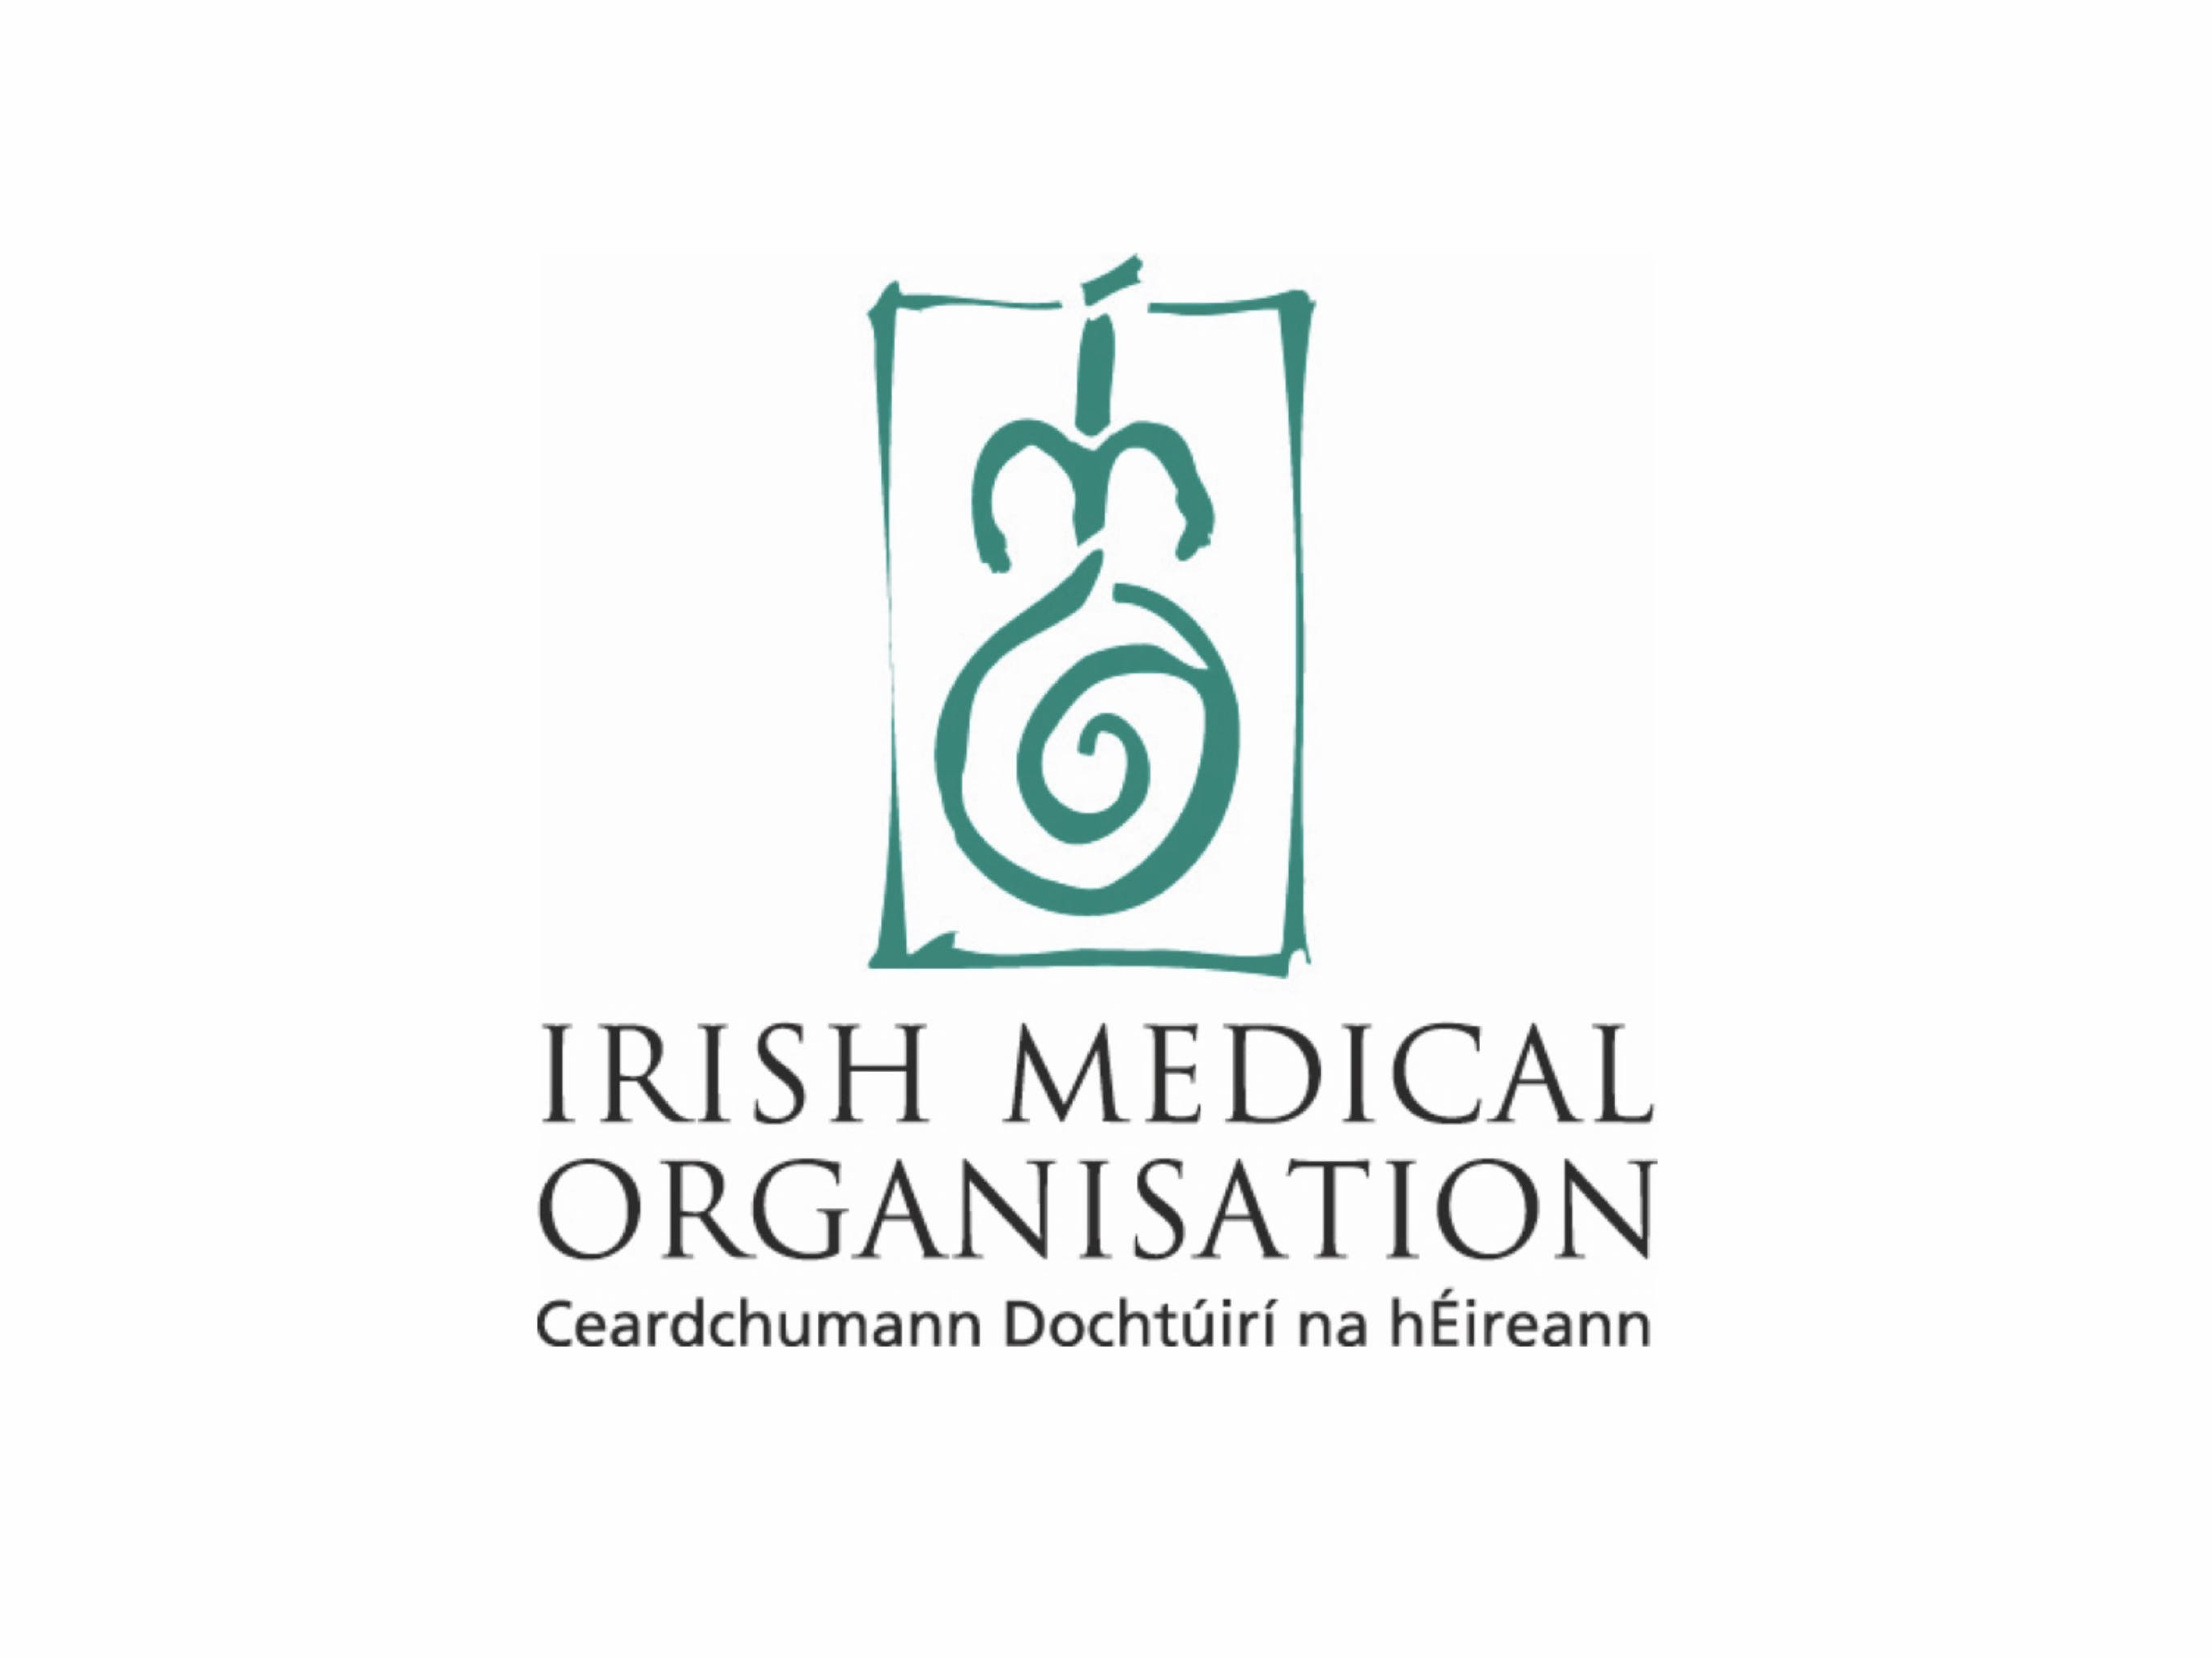 IMO urges parents to avail of free flu vaccination for children